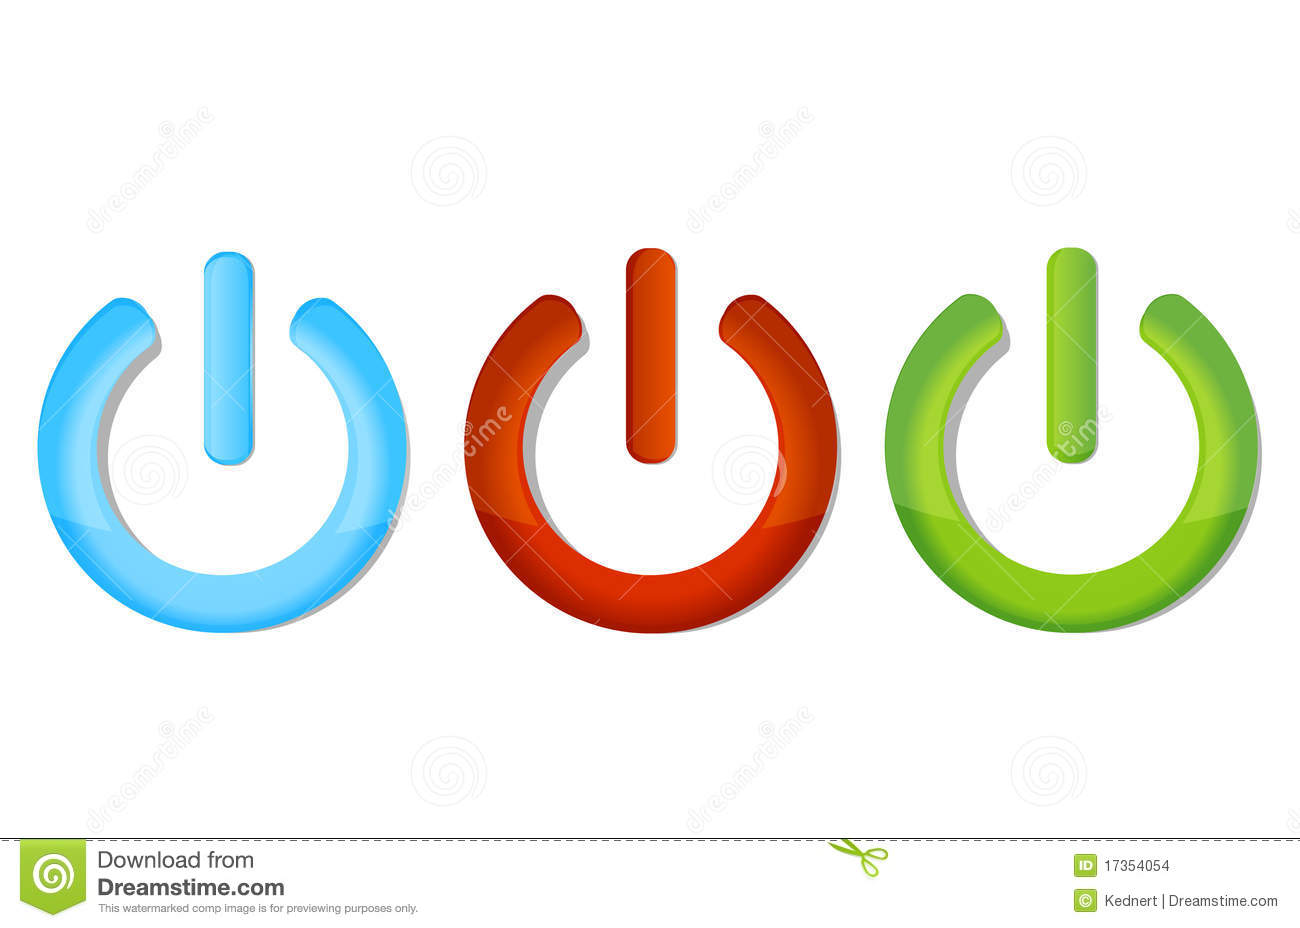 Symbols on off set stock vector. Illustration of shape - 17354054